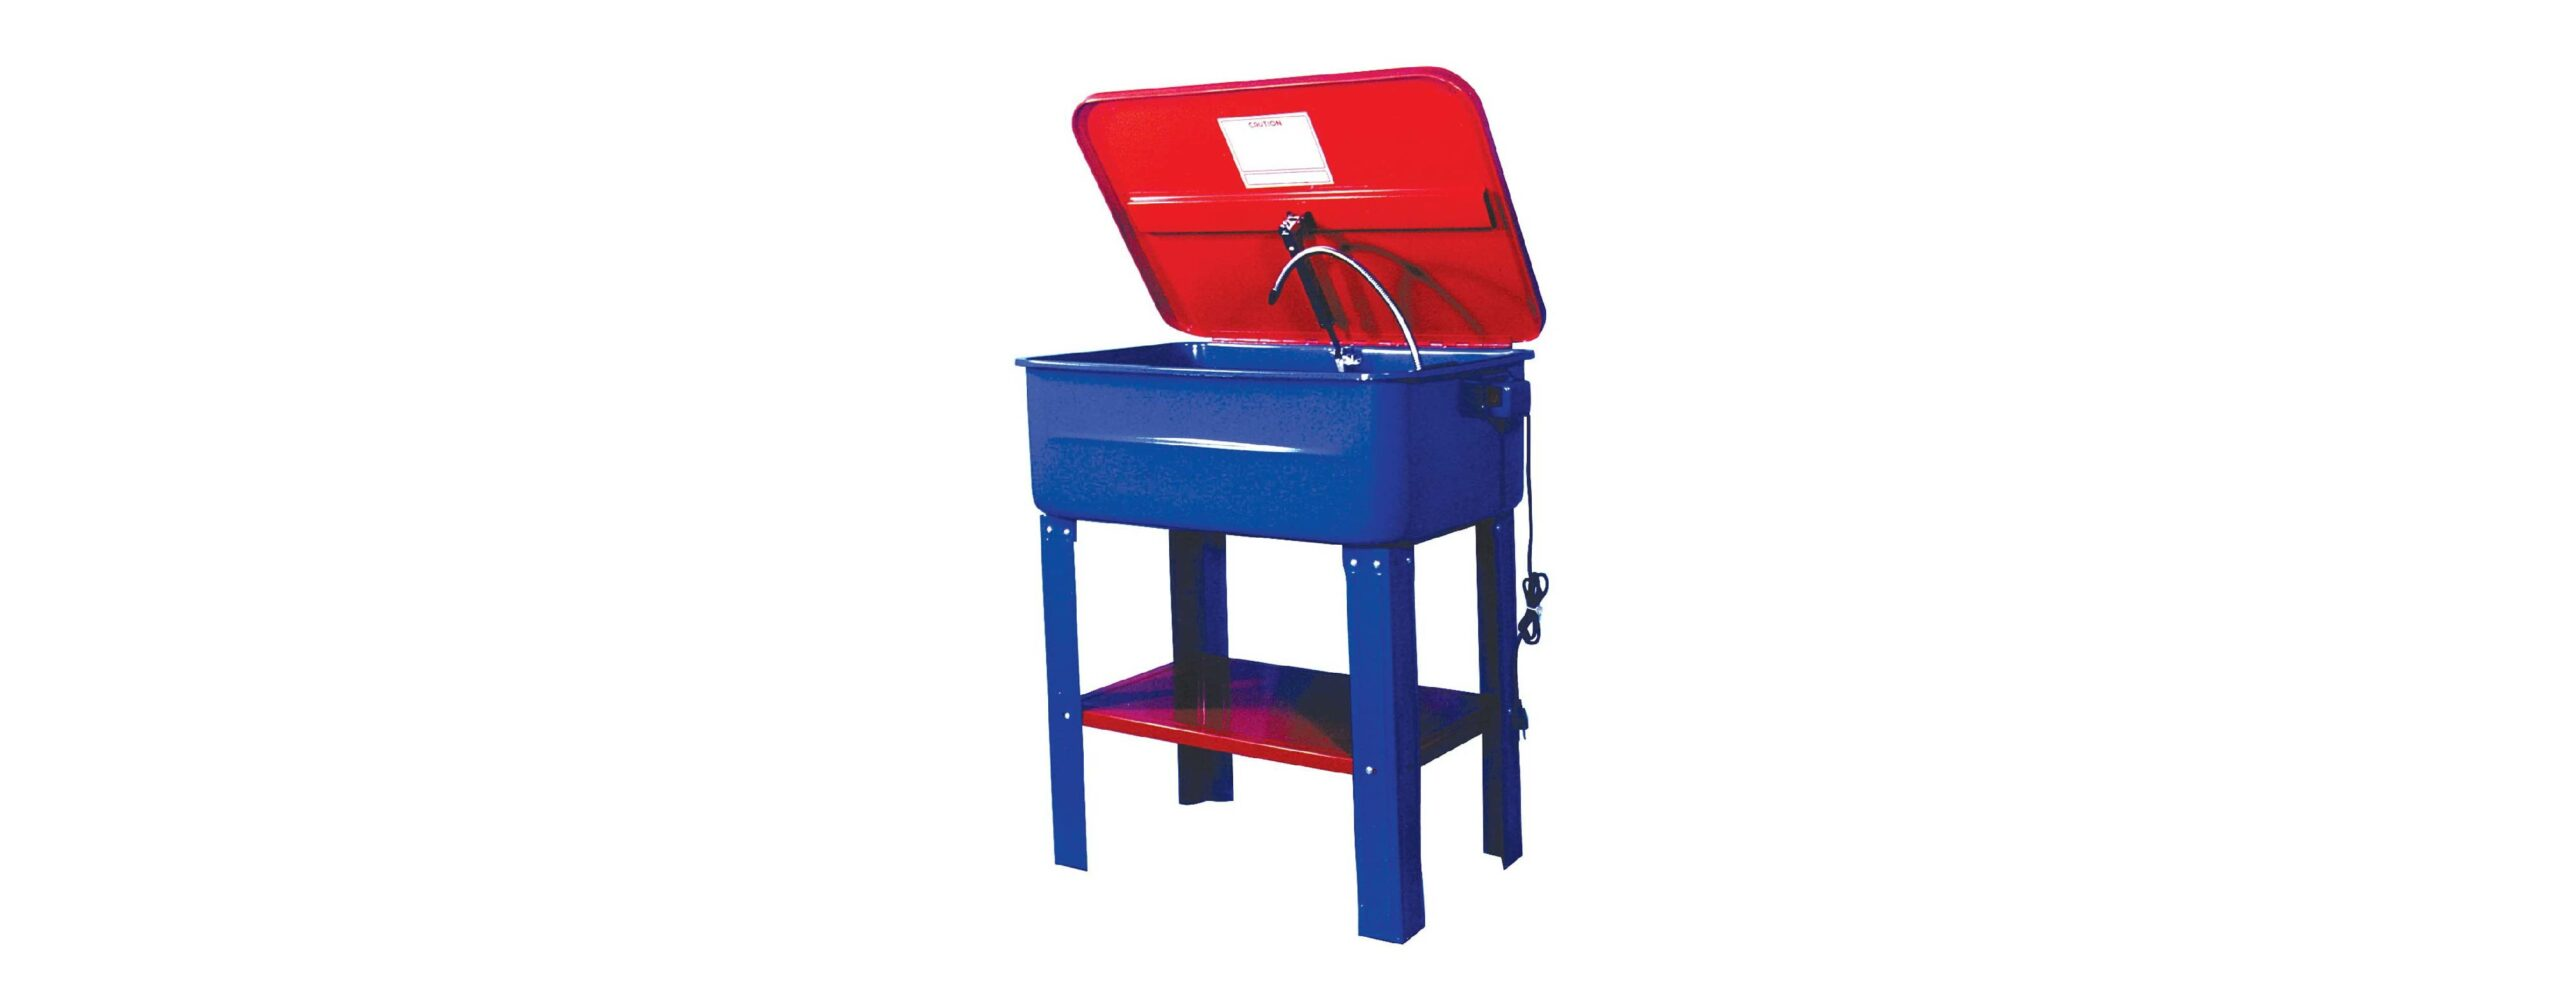 Astro 20-Gallon Electric Parts Washer